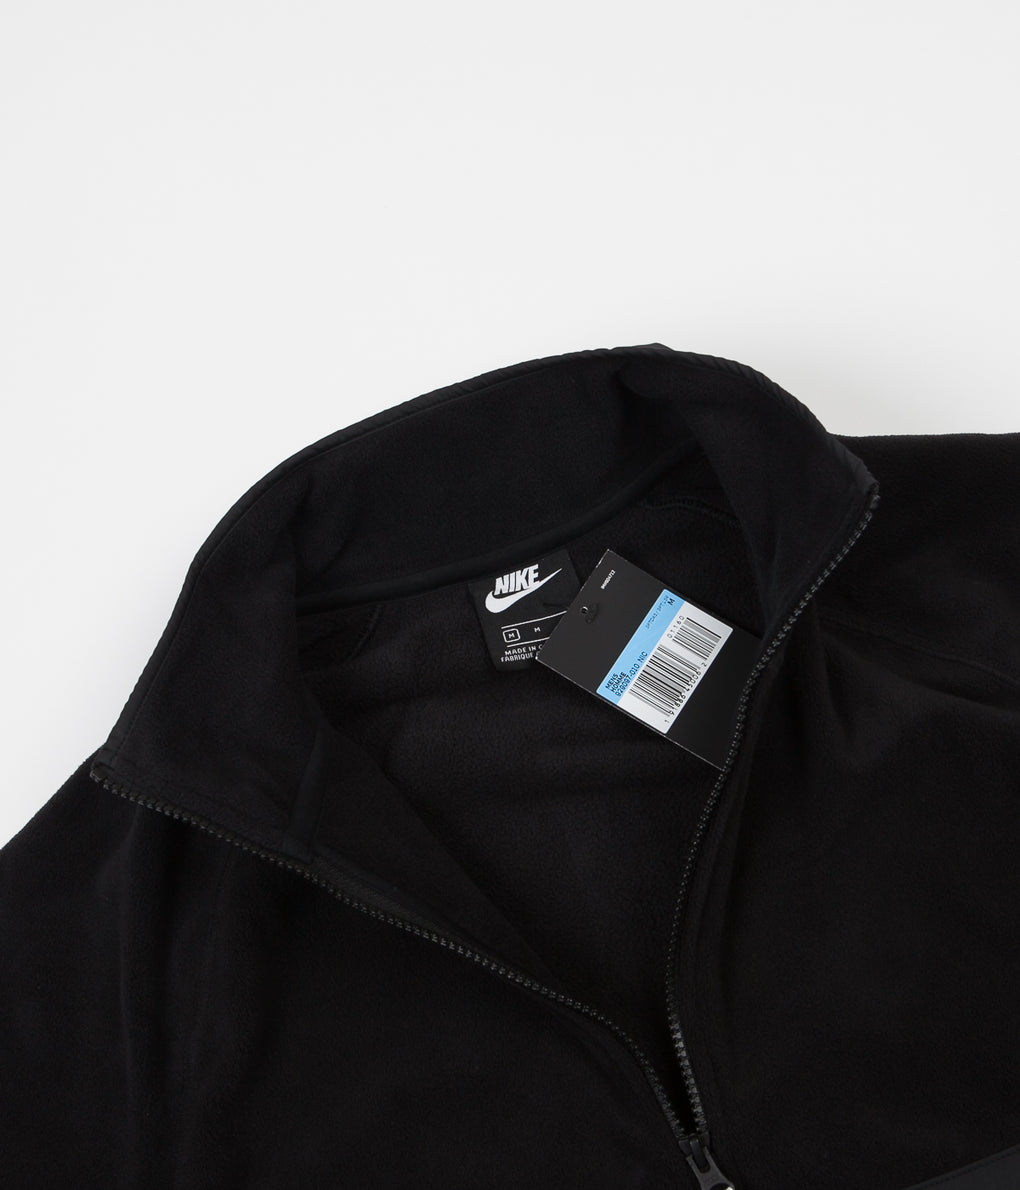 Nike Sportswear Half Zip Fleece Sweatshirt - Black / Black / White